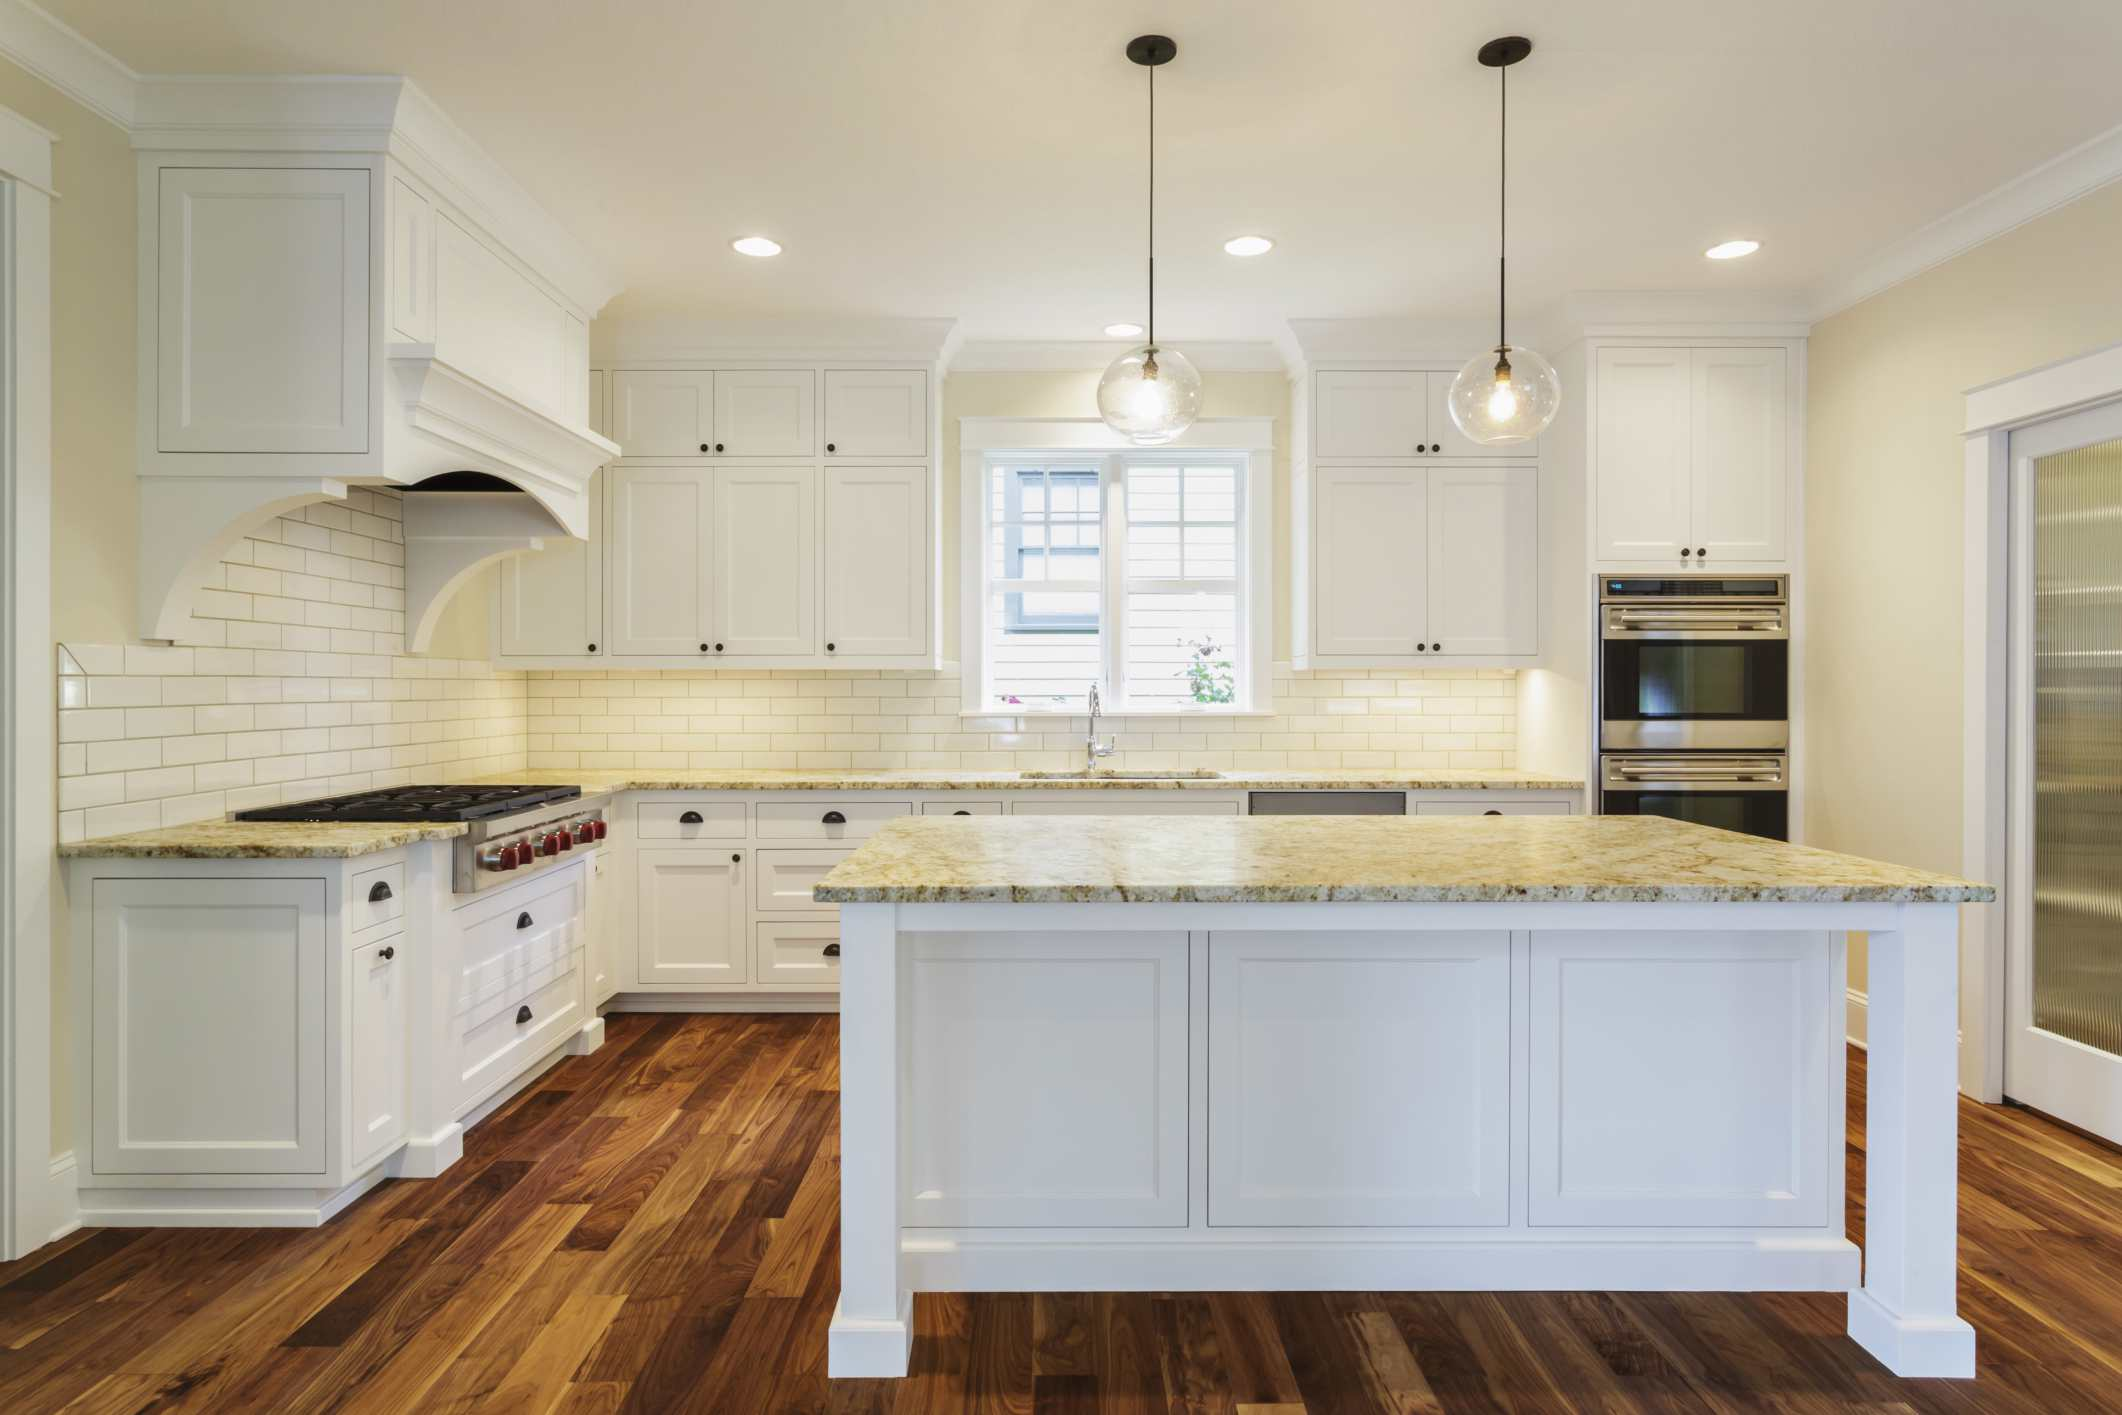 Luxury Dark Wood Floors White Cabinets